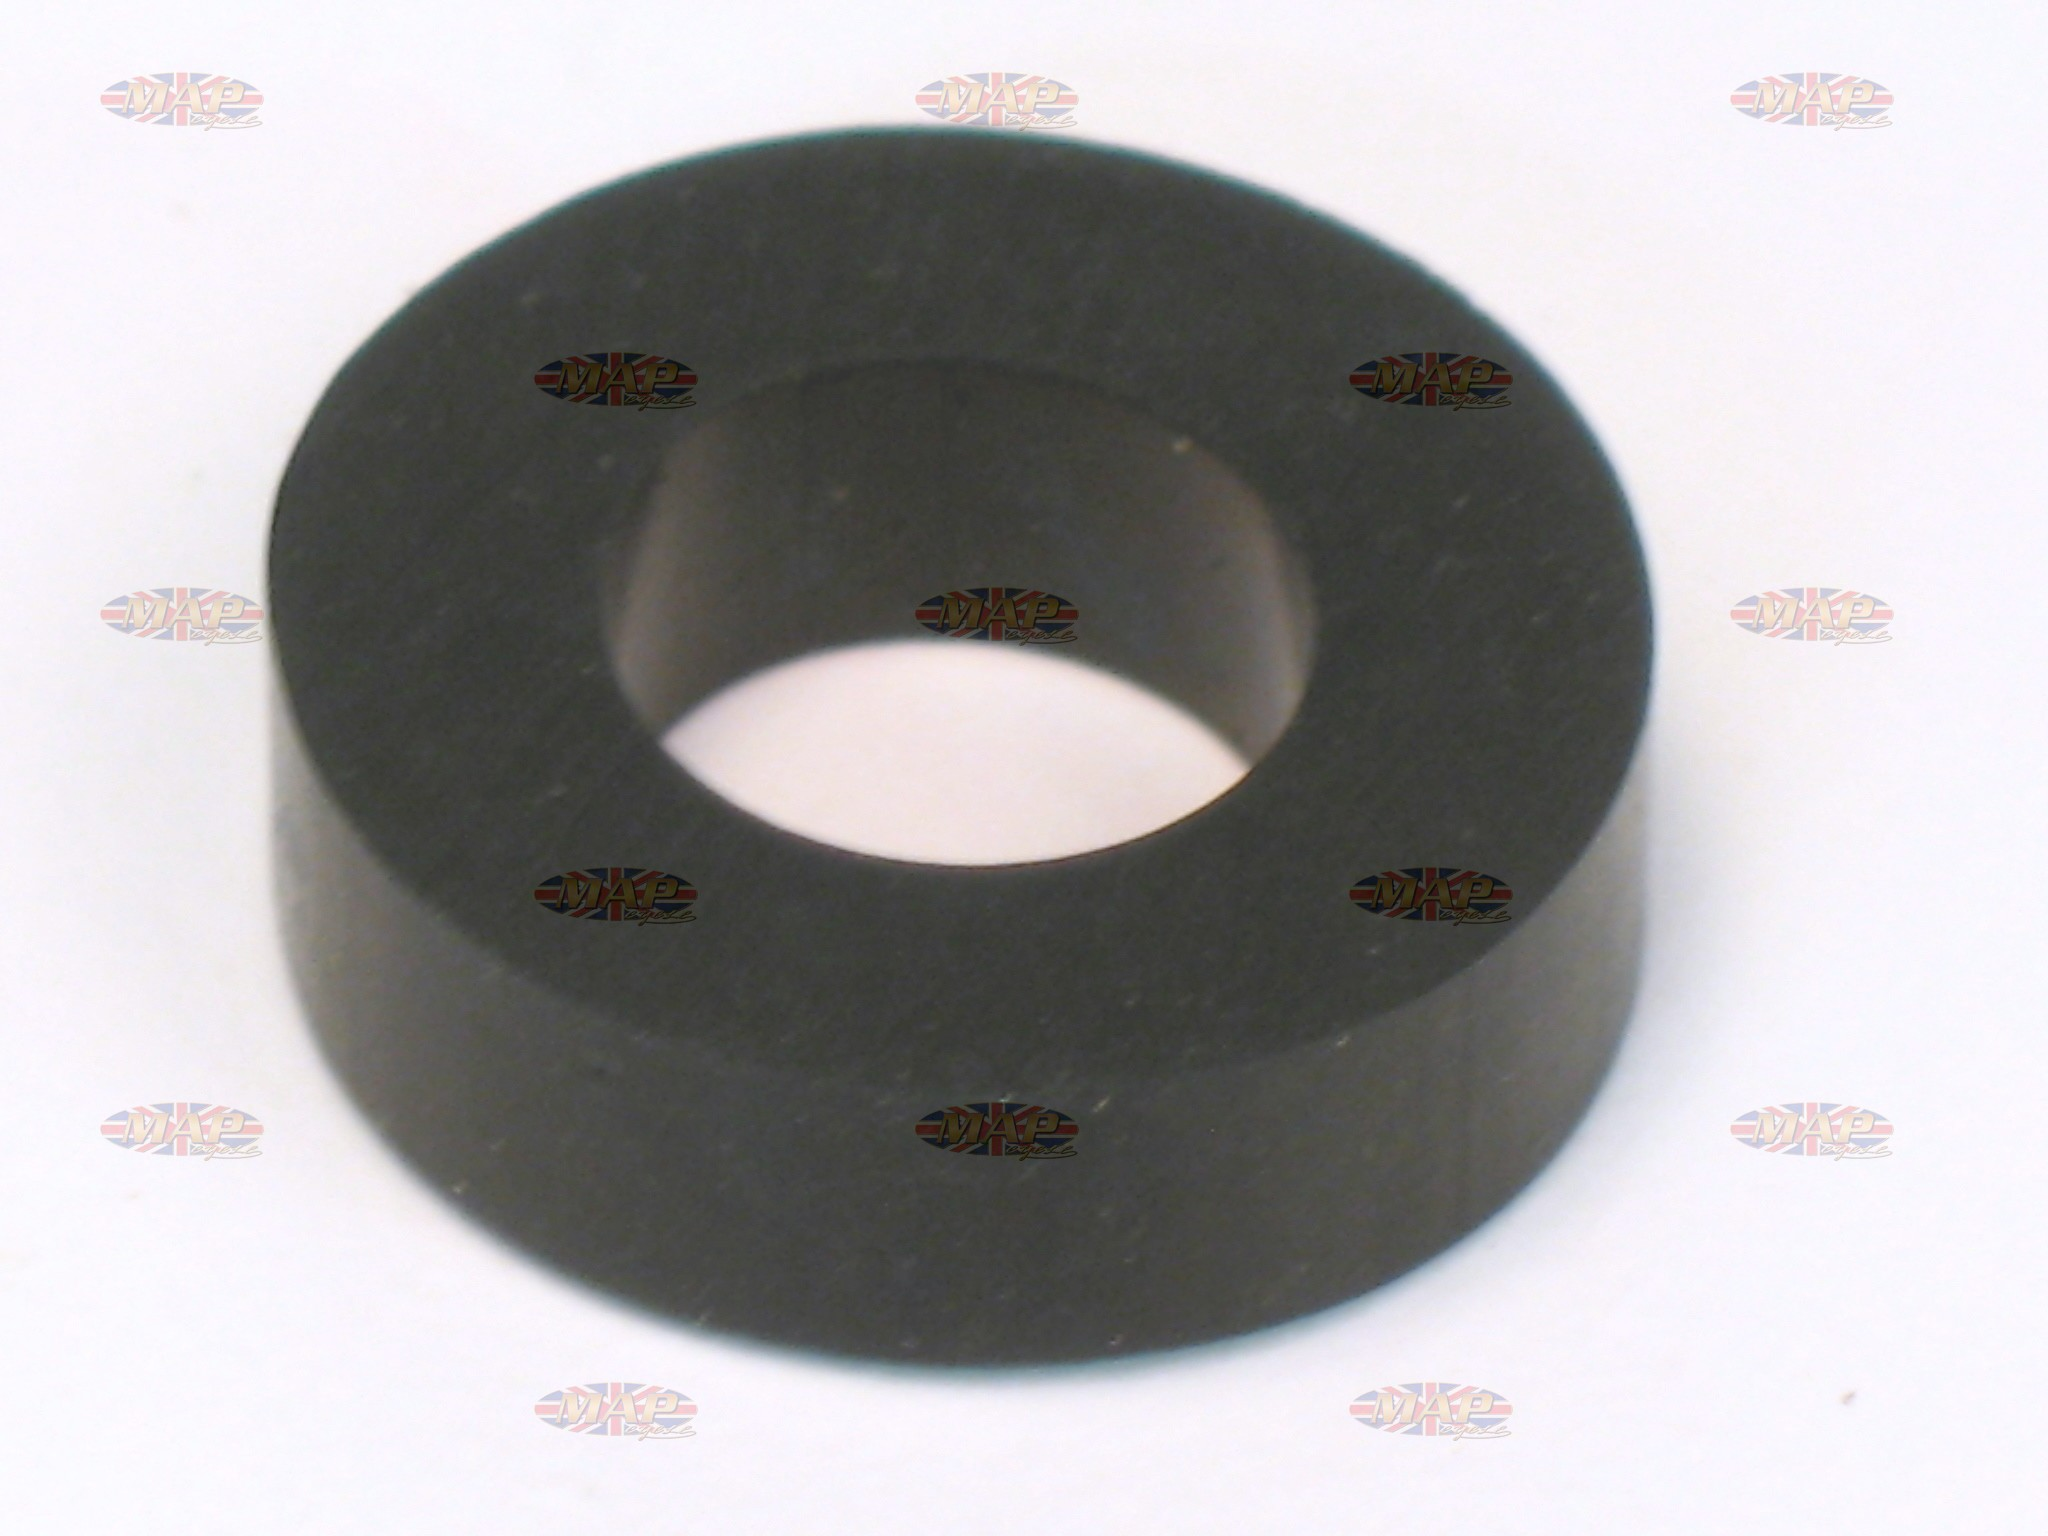 Triumph Steady Rubber Grommet for Handlebar P-Clamp 97-1580